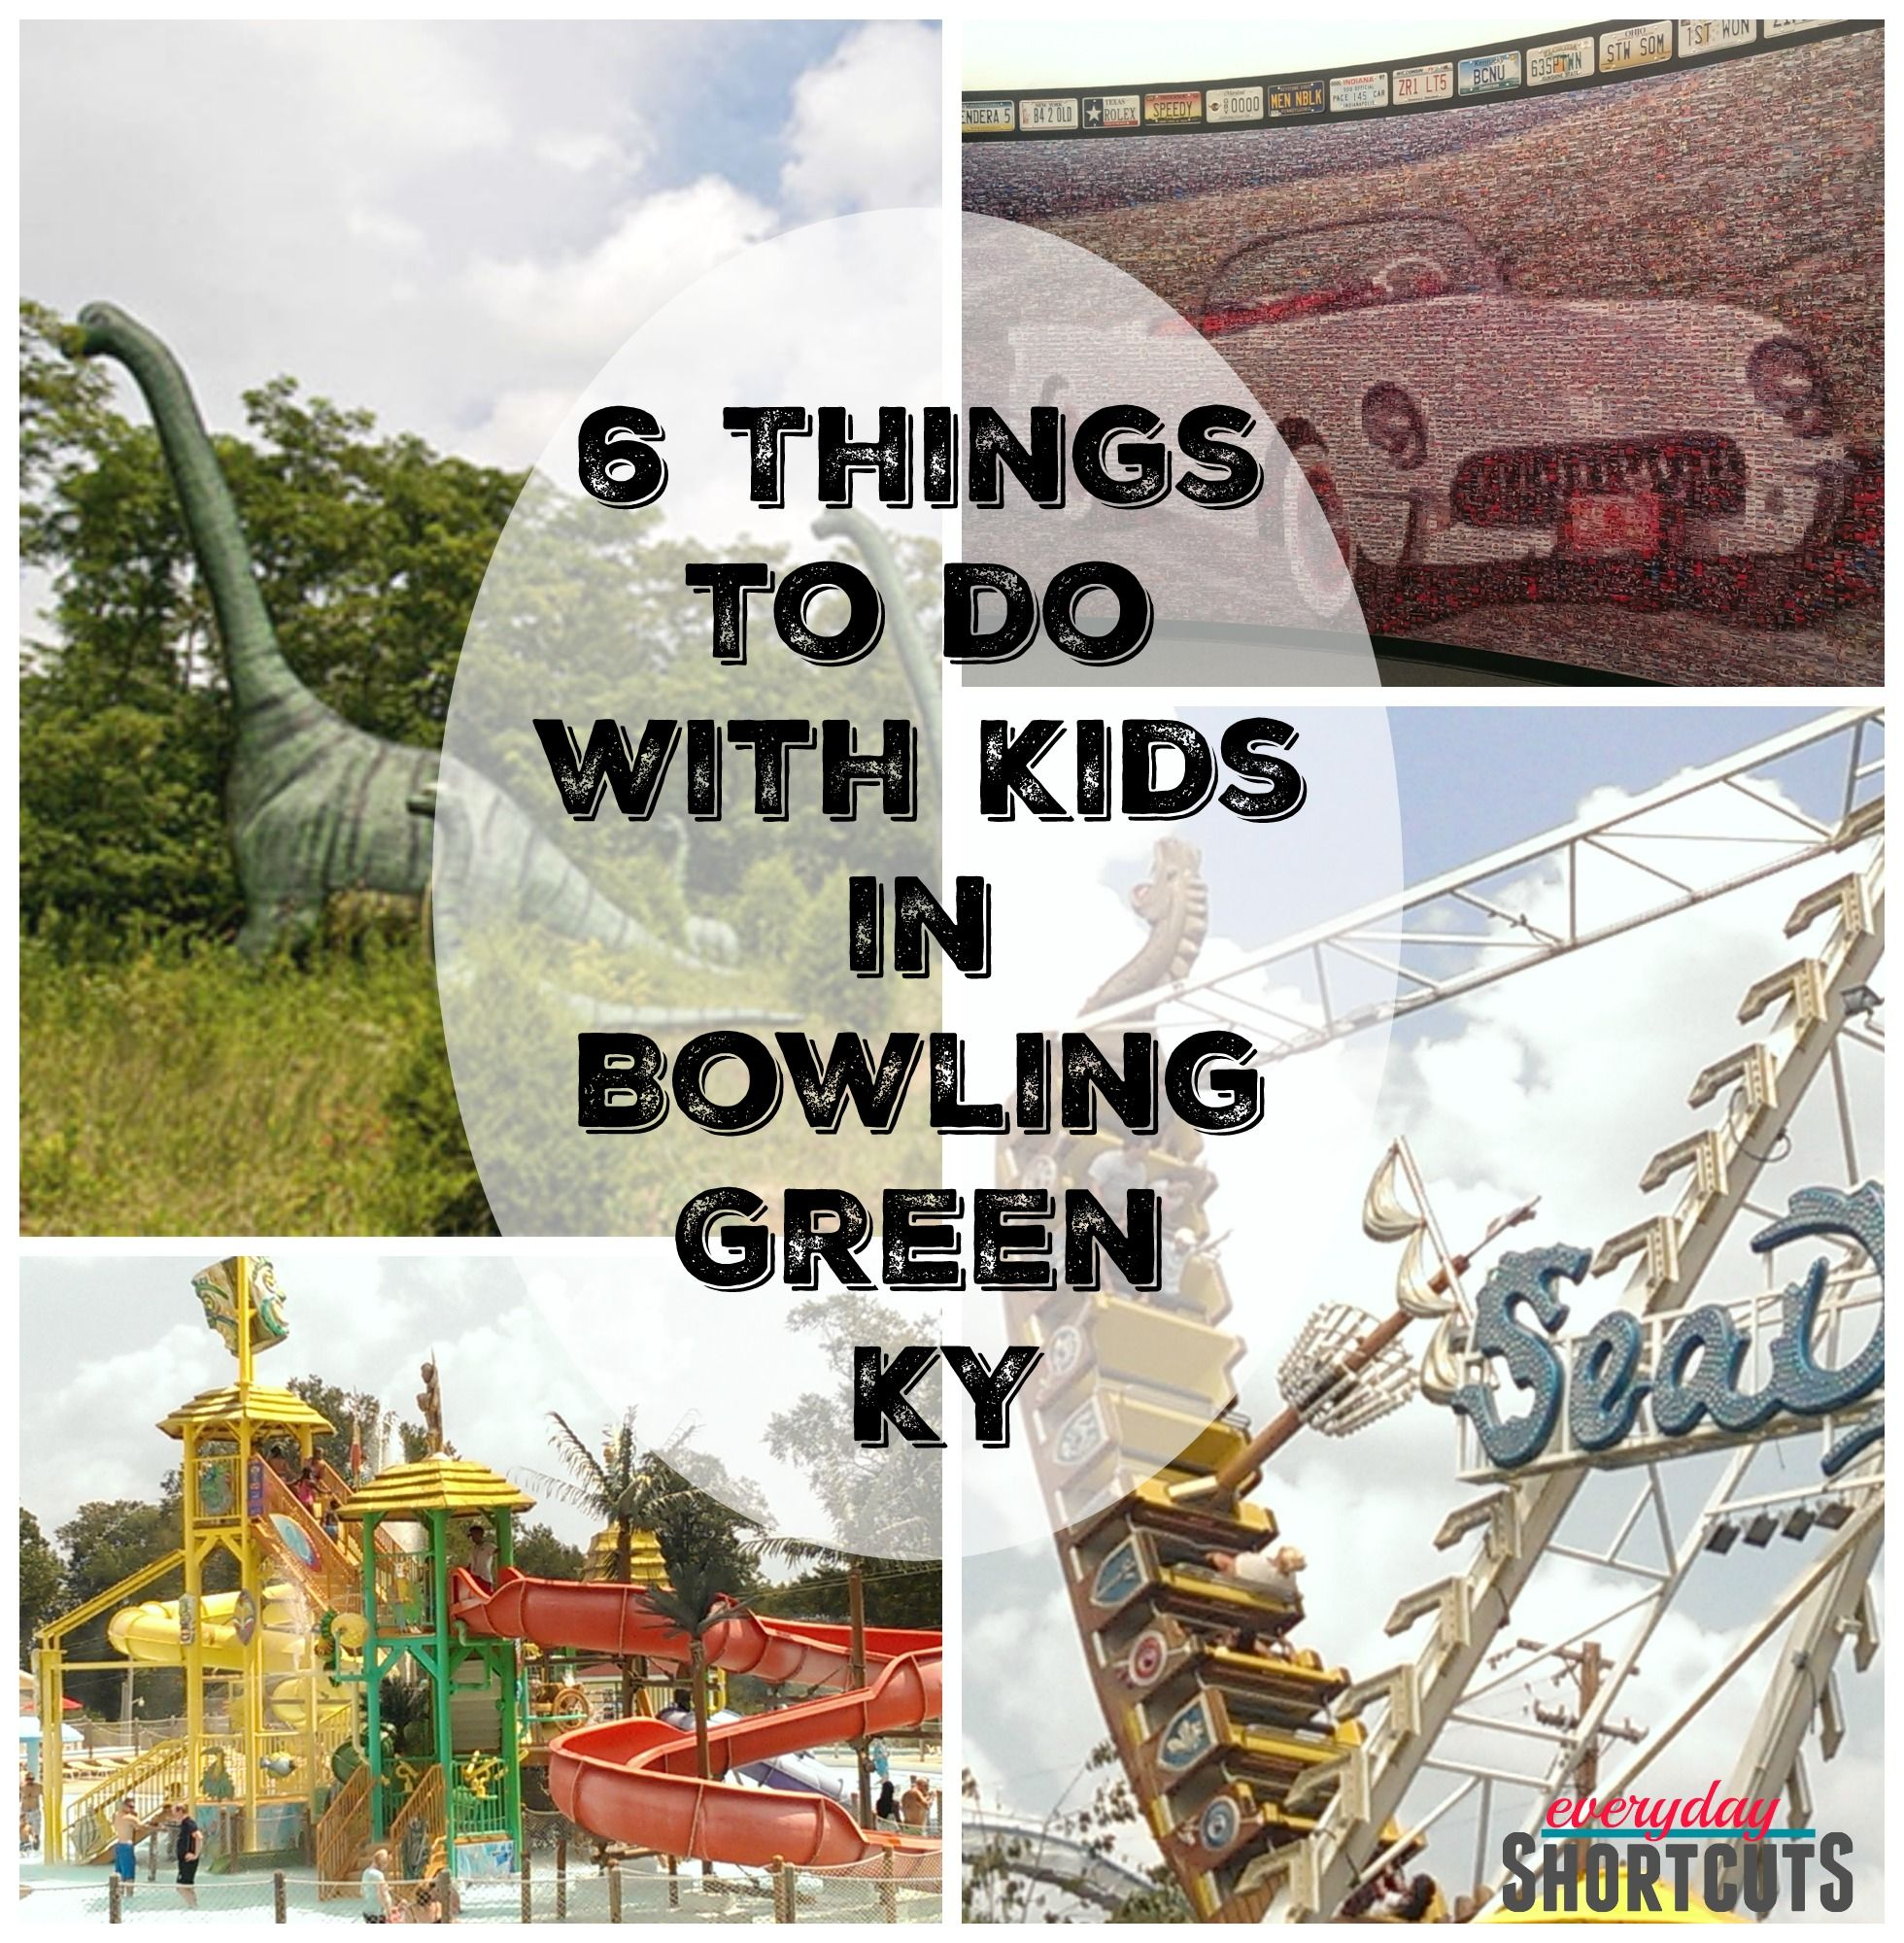 6 Things To Do With Kids In Bowling Green, KY